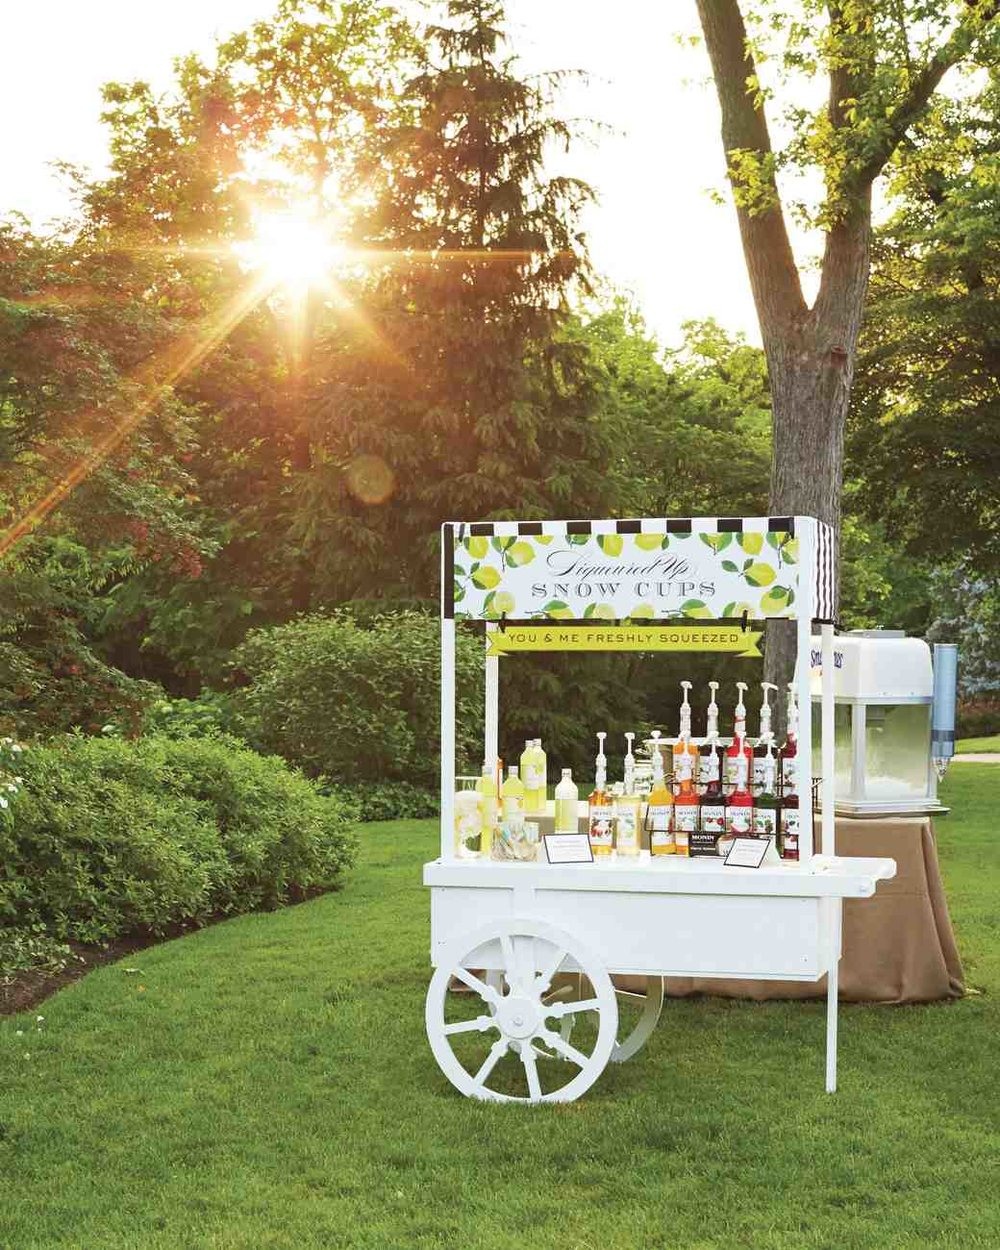 merin-ryan-real-wedding-custom-snow-cone-cart_vert.jpg